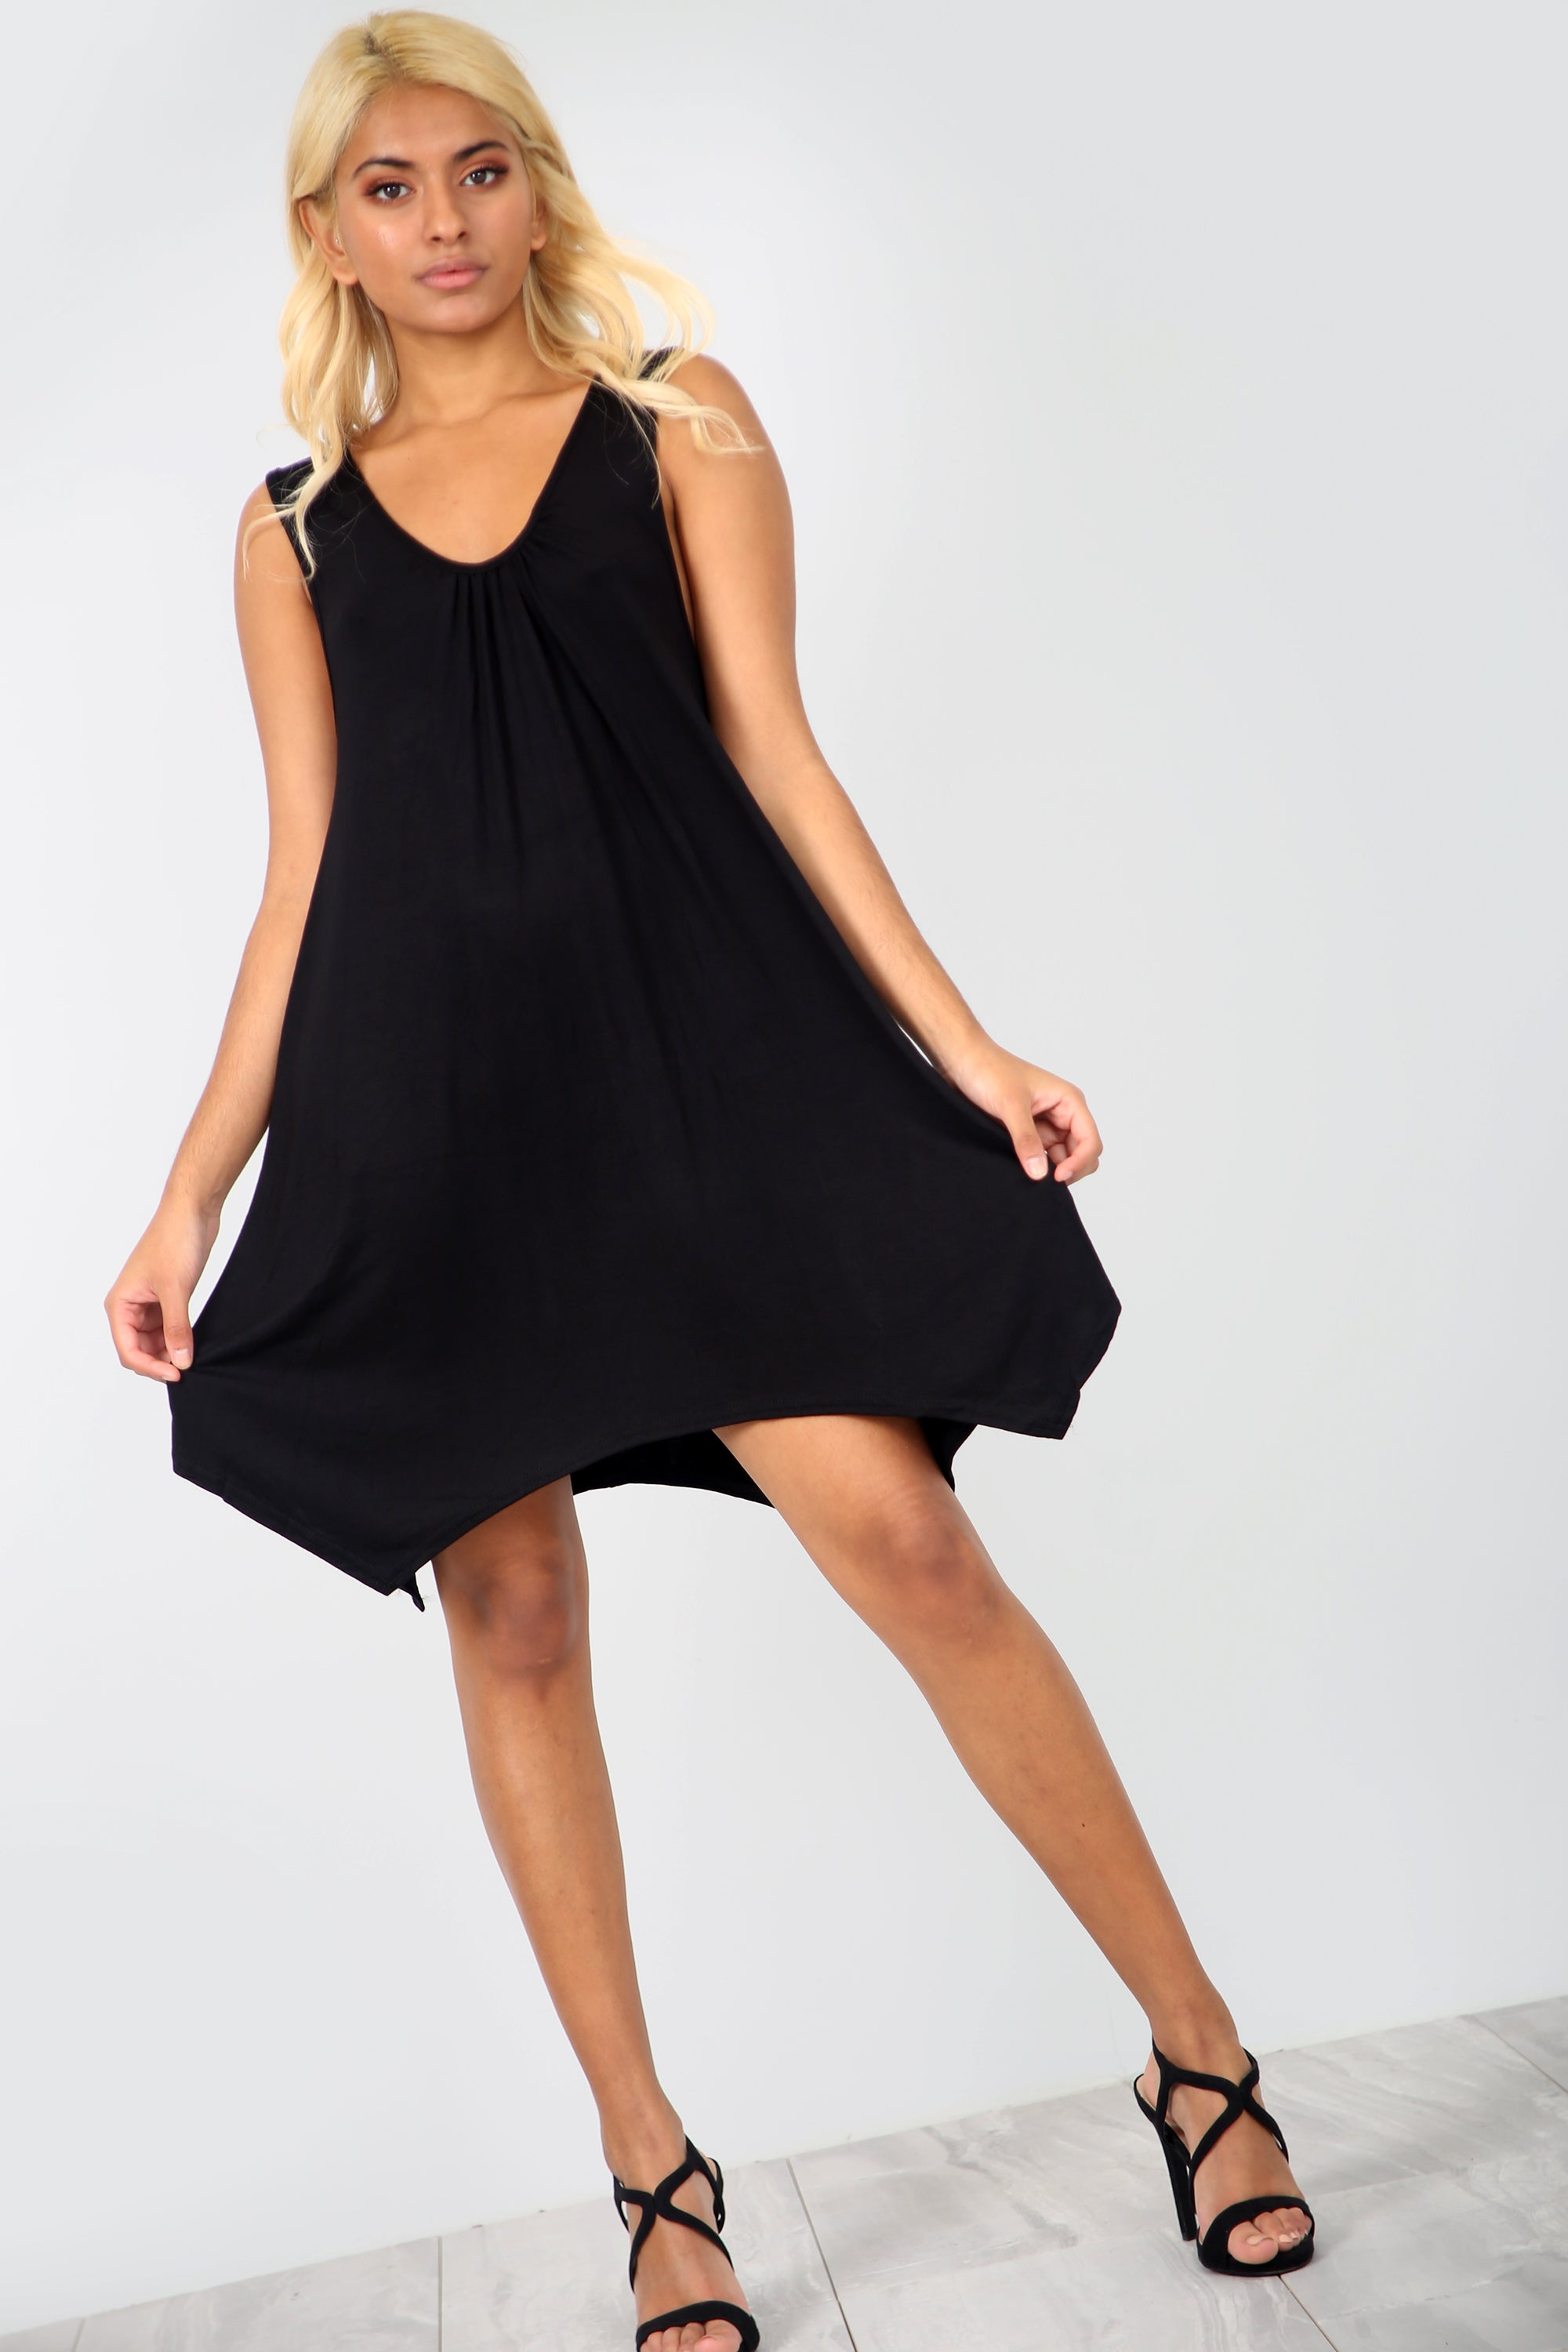 Sleeveless Hanky Hem Black Basic Mini Dress - bejealous-com